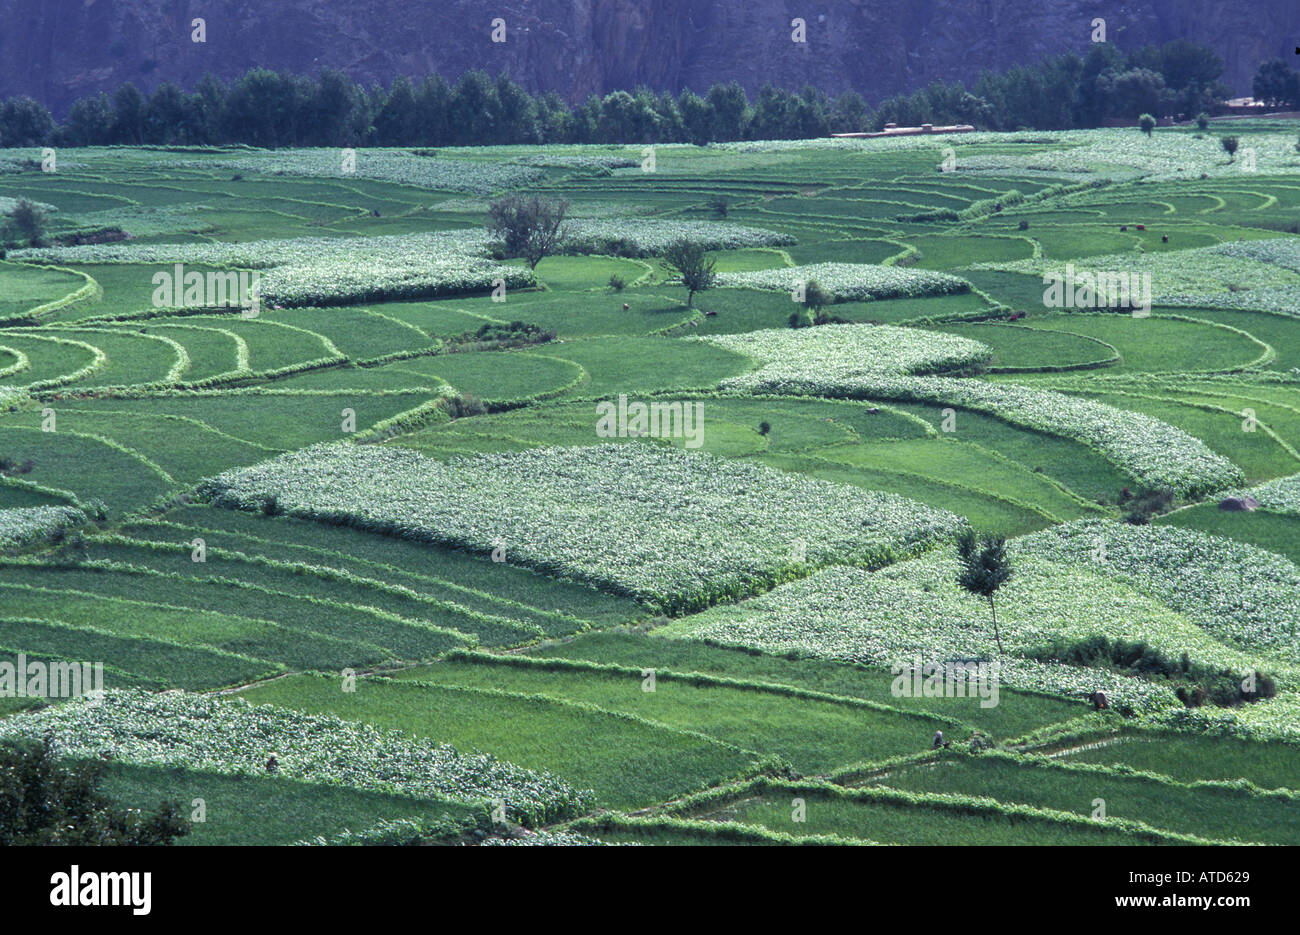 Green patchwork of agricultural fields of the Swat valley near Mingora Pakistan - Stock Image